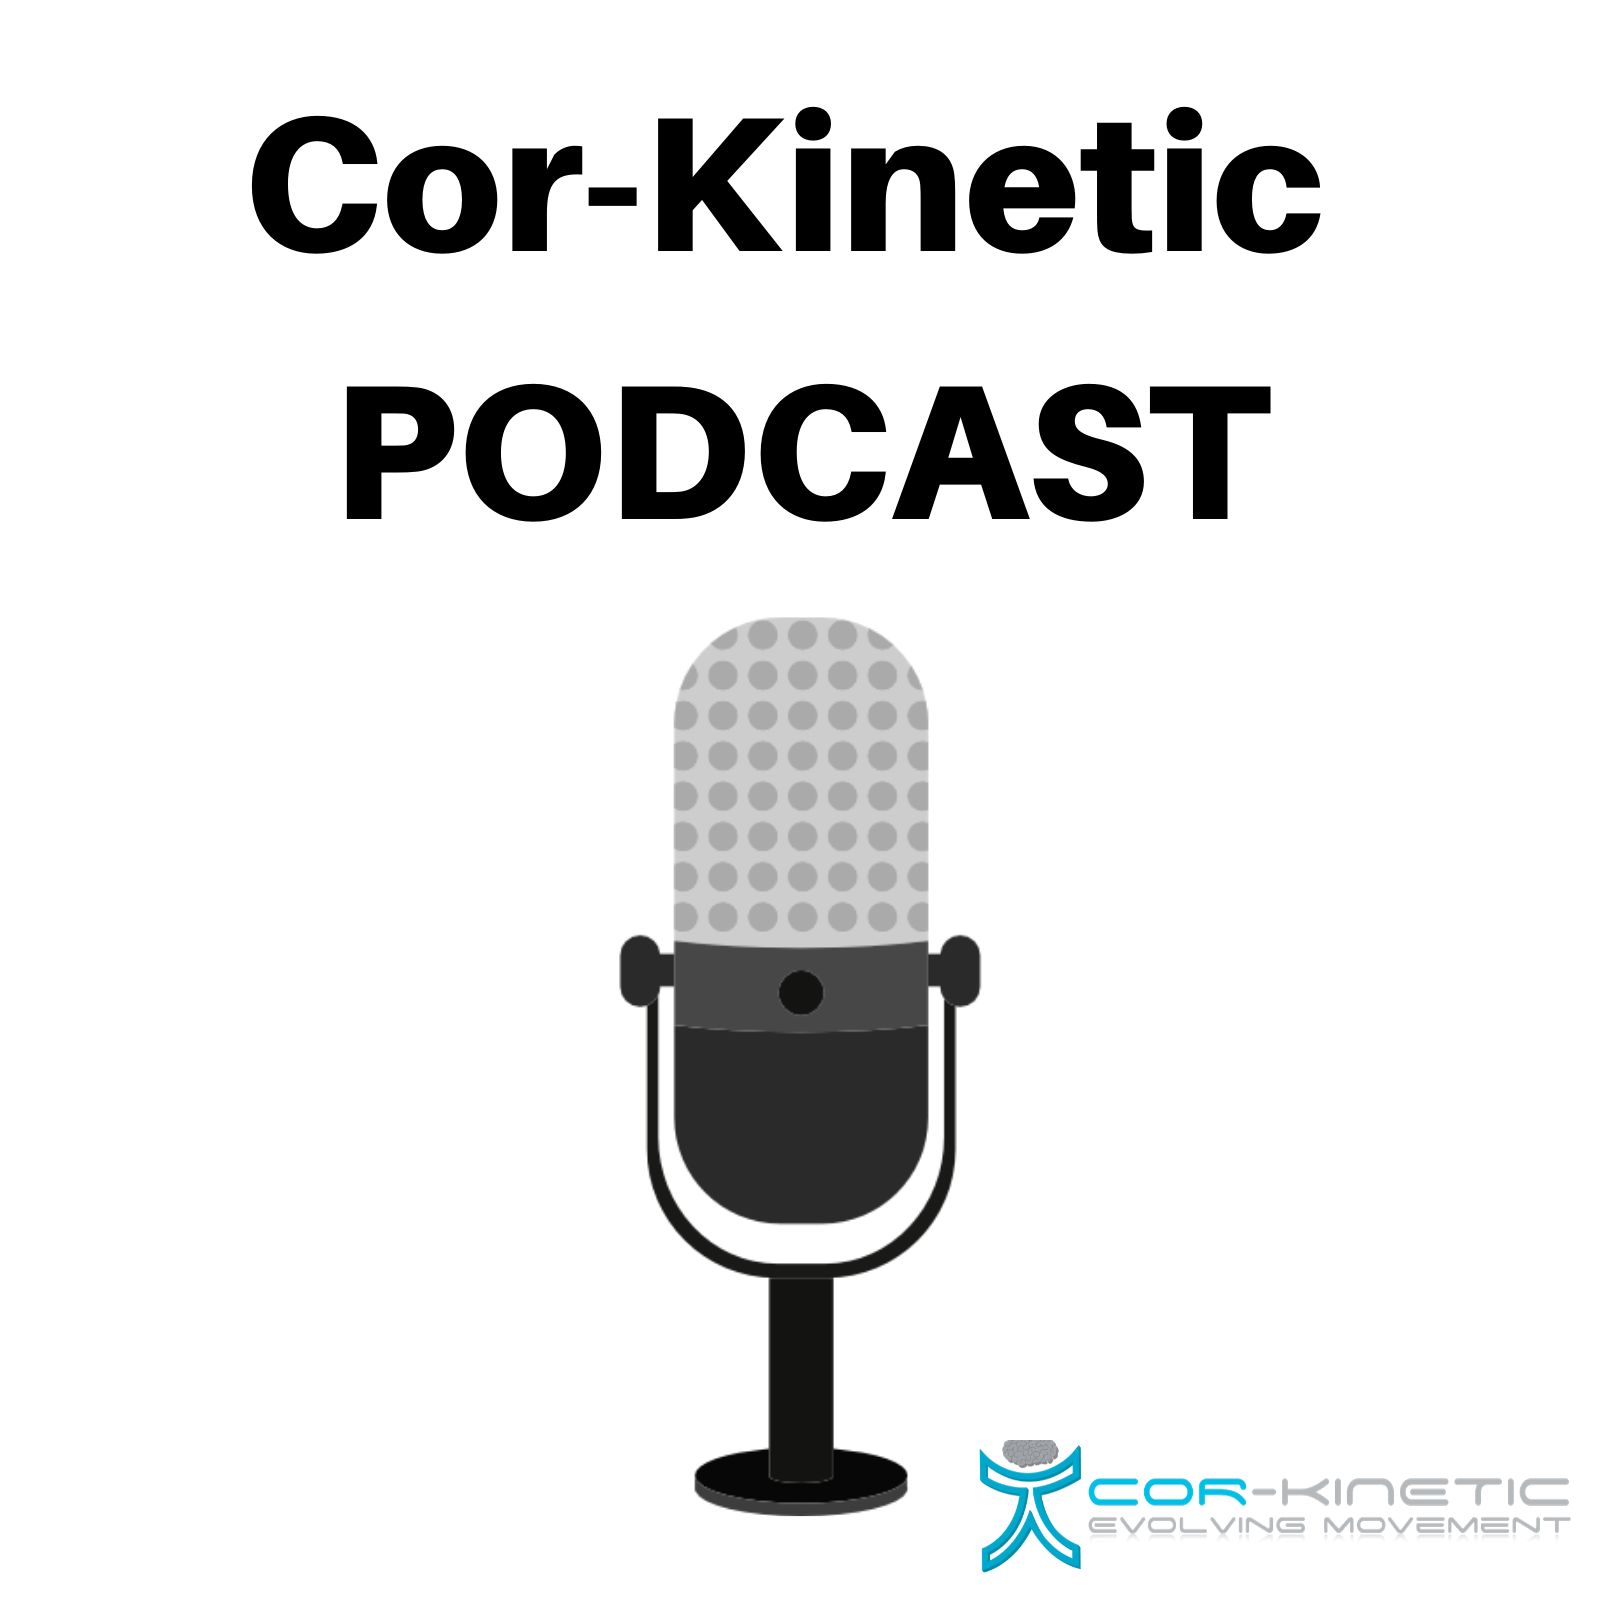 Podcast EP 5 - Melissa Farmer talking central sensitisation and pain